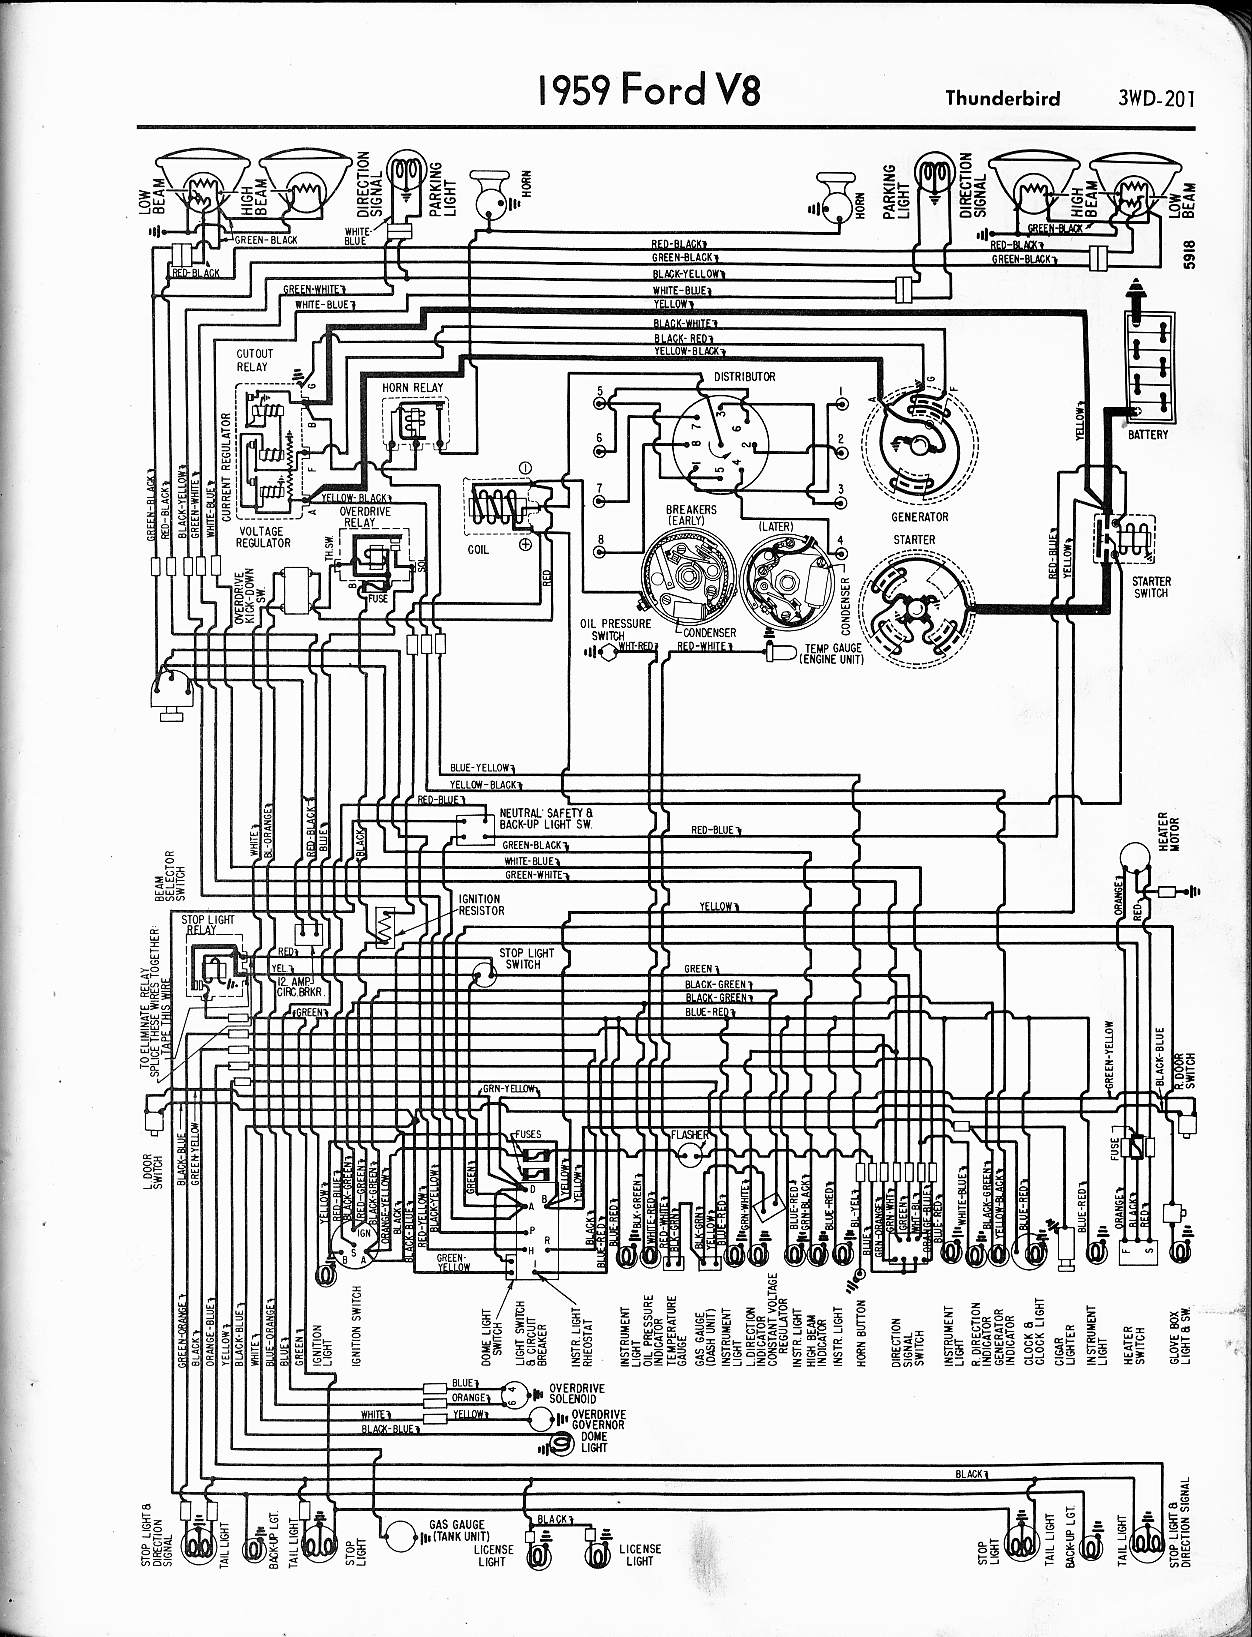 [SCHEMATICS_48EU]  967E9 1966 Thunderbird Power Window Wiring Diagram | Wiring Library | 1966 Corvette Wiring Diagram Pdf |  | Wiring Library